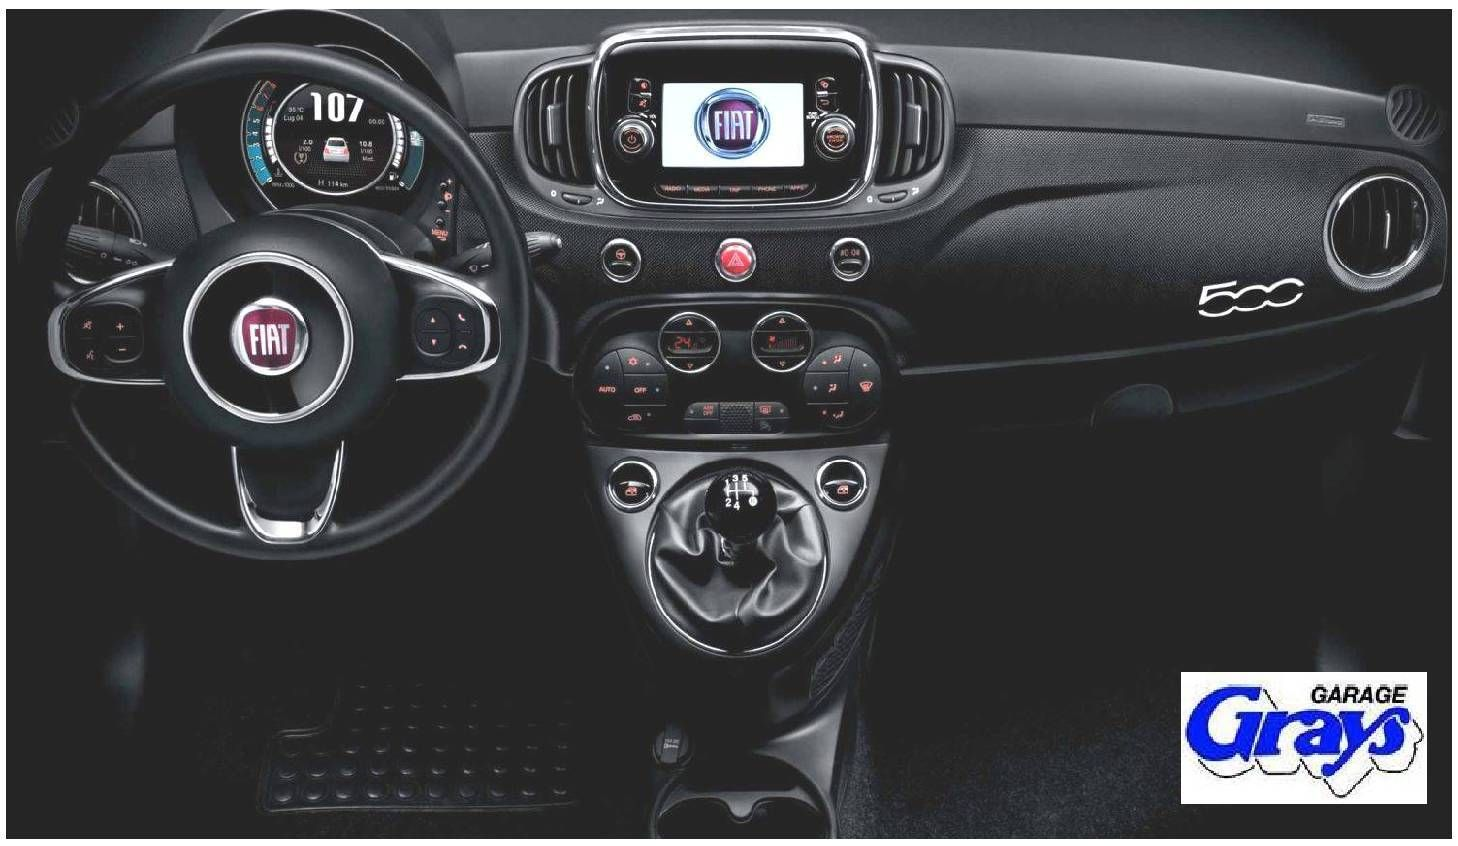 Fiat 500 Micro Carbon Wrapped Dashboard Rhd Kit Fiat 500 Fiat